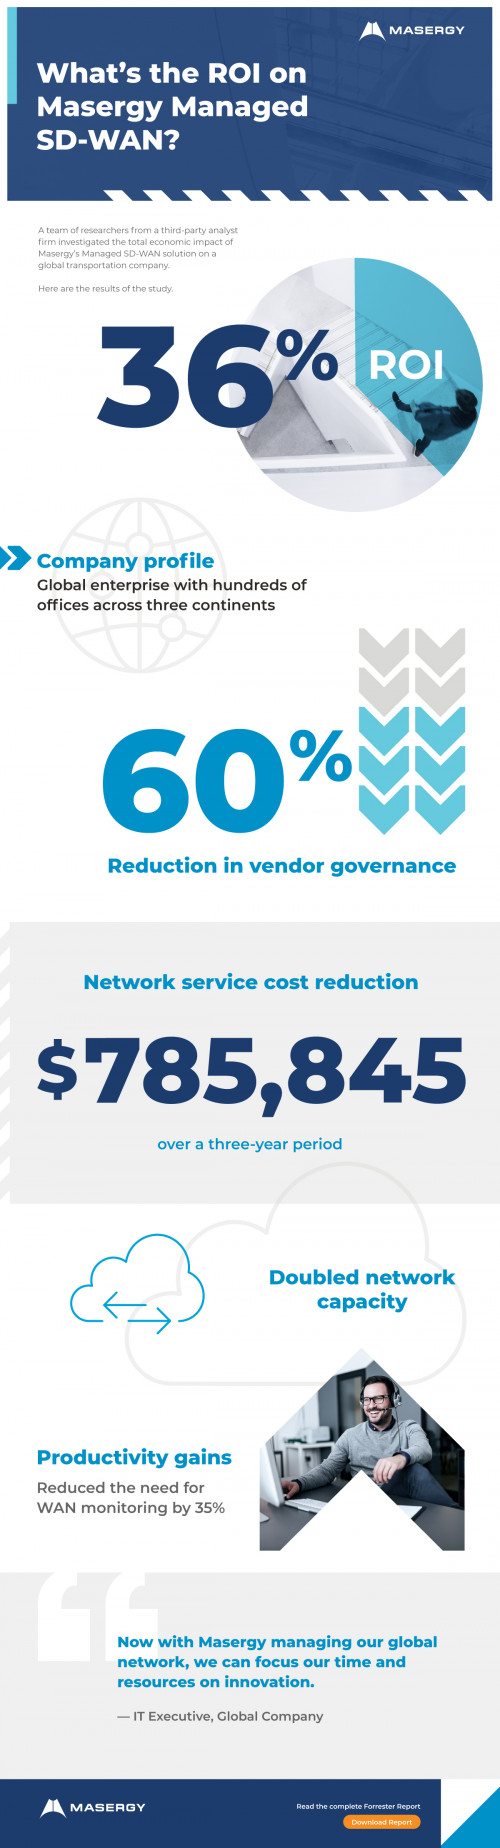 What-is-the-ROI-on-Masergys-SD-WAN-Infographic8a8d8cfbe7e3bb15.jpg